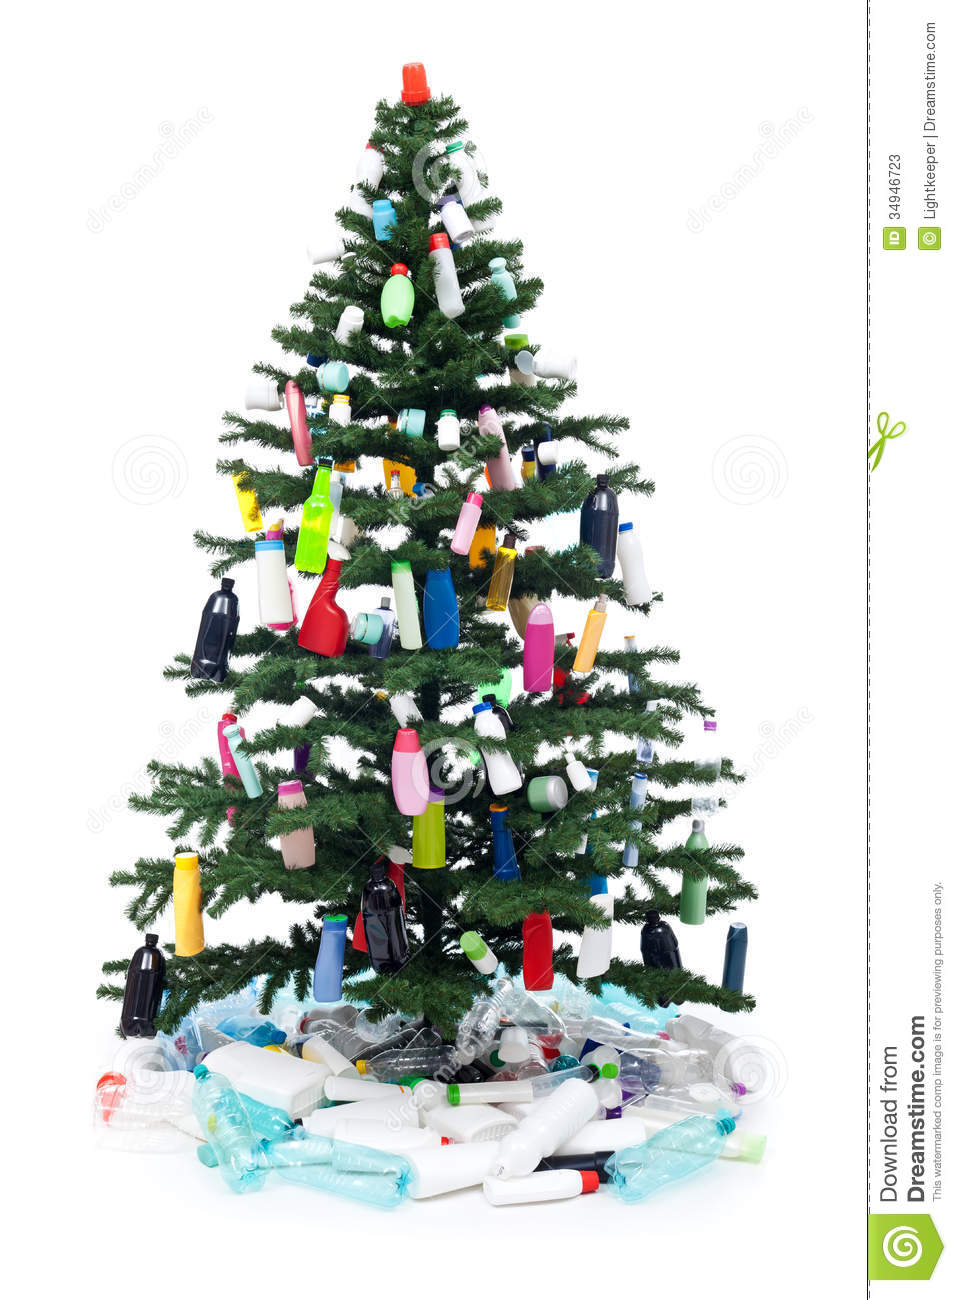 how to make a christmas tree with plastic bottles